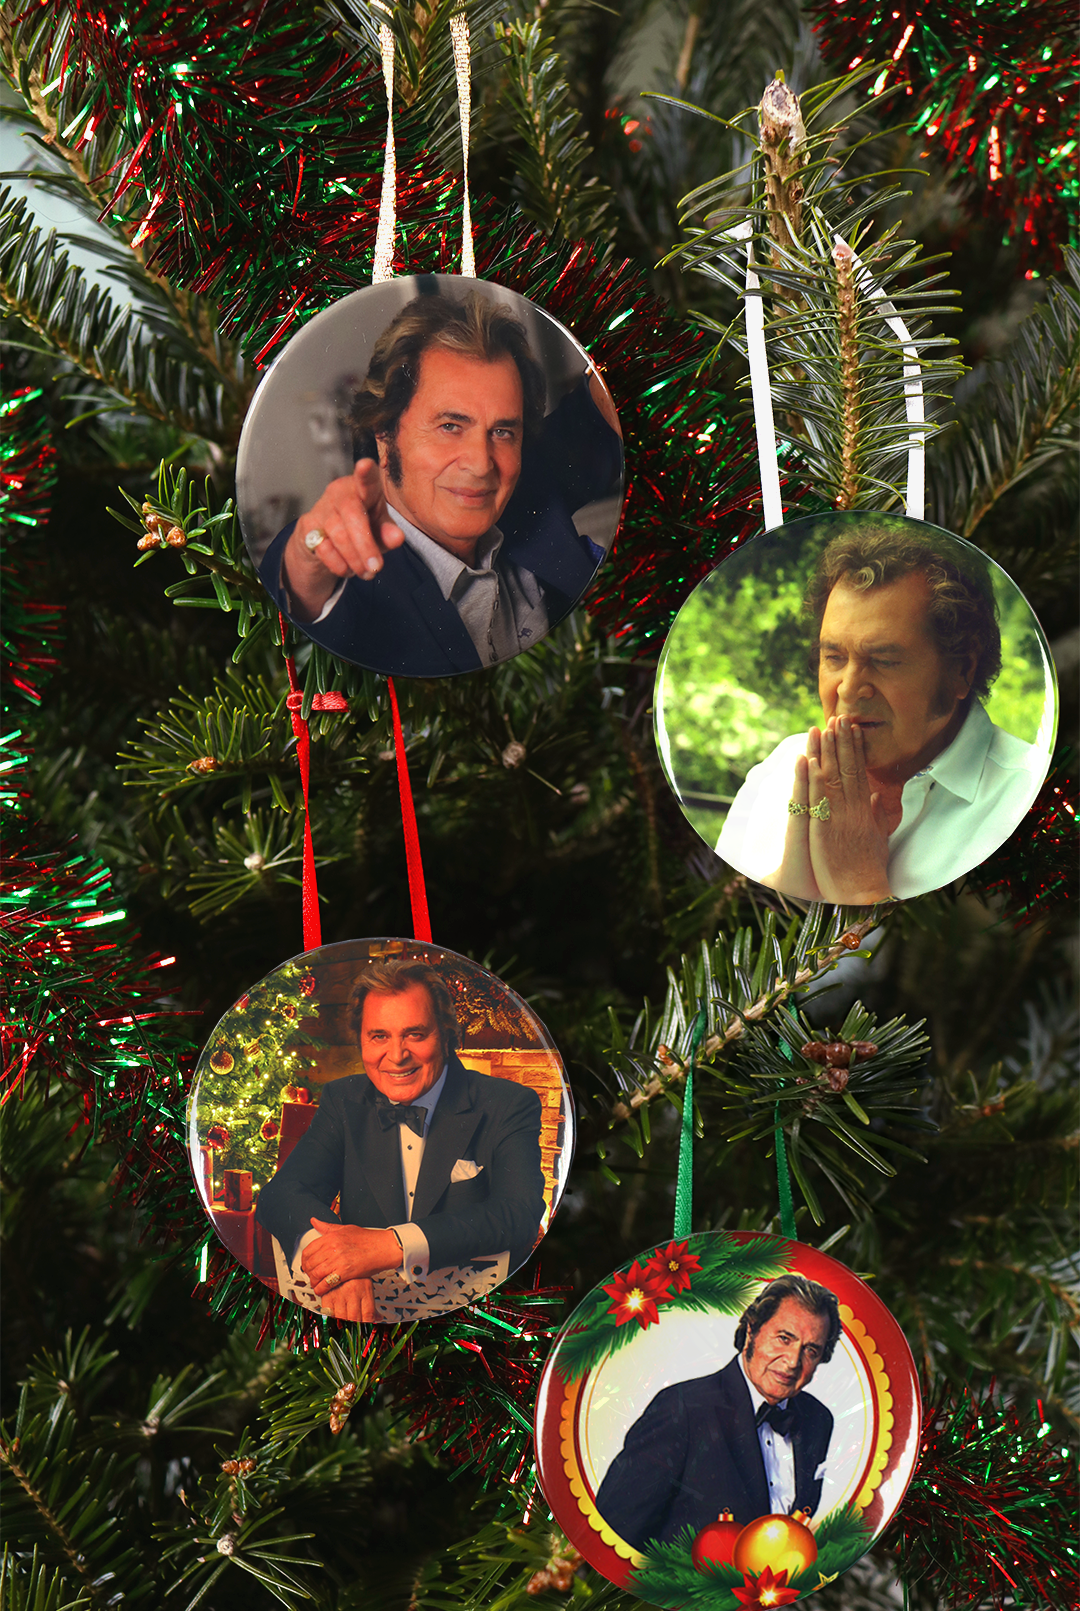 Win a Set of Four Engelbert Humperdinck Christmas Ornaments!